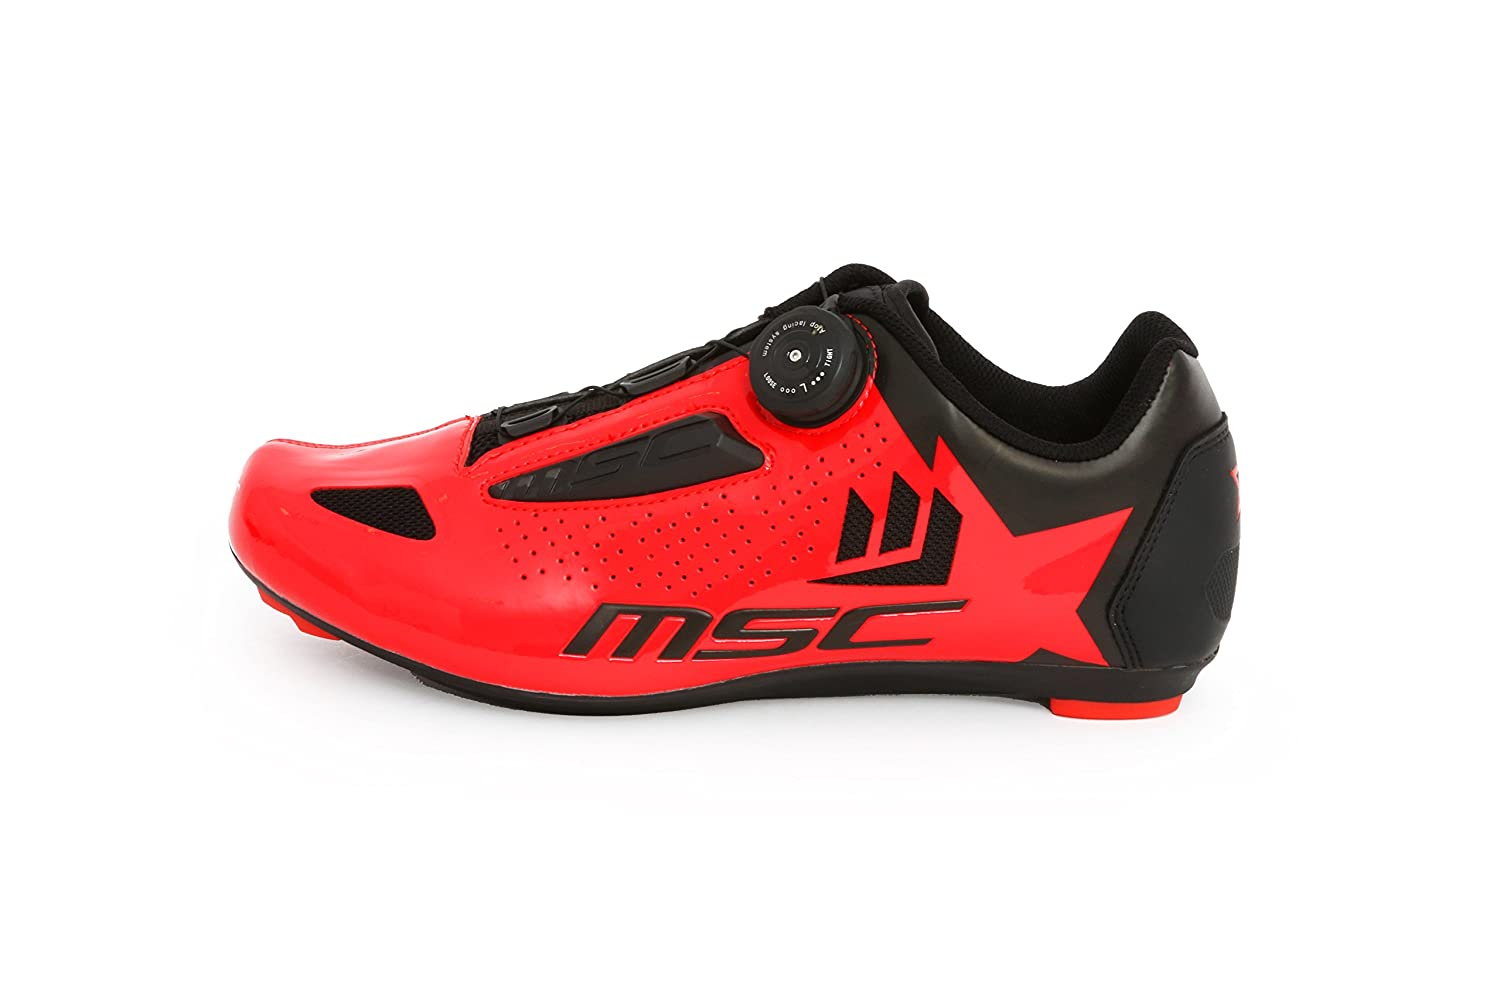 MSC Bikes Aero Road Zapatillas, Unisex Adulto: Amazon.es: Deportes y aire libre